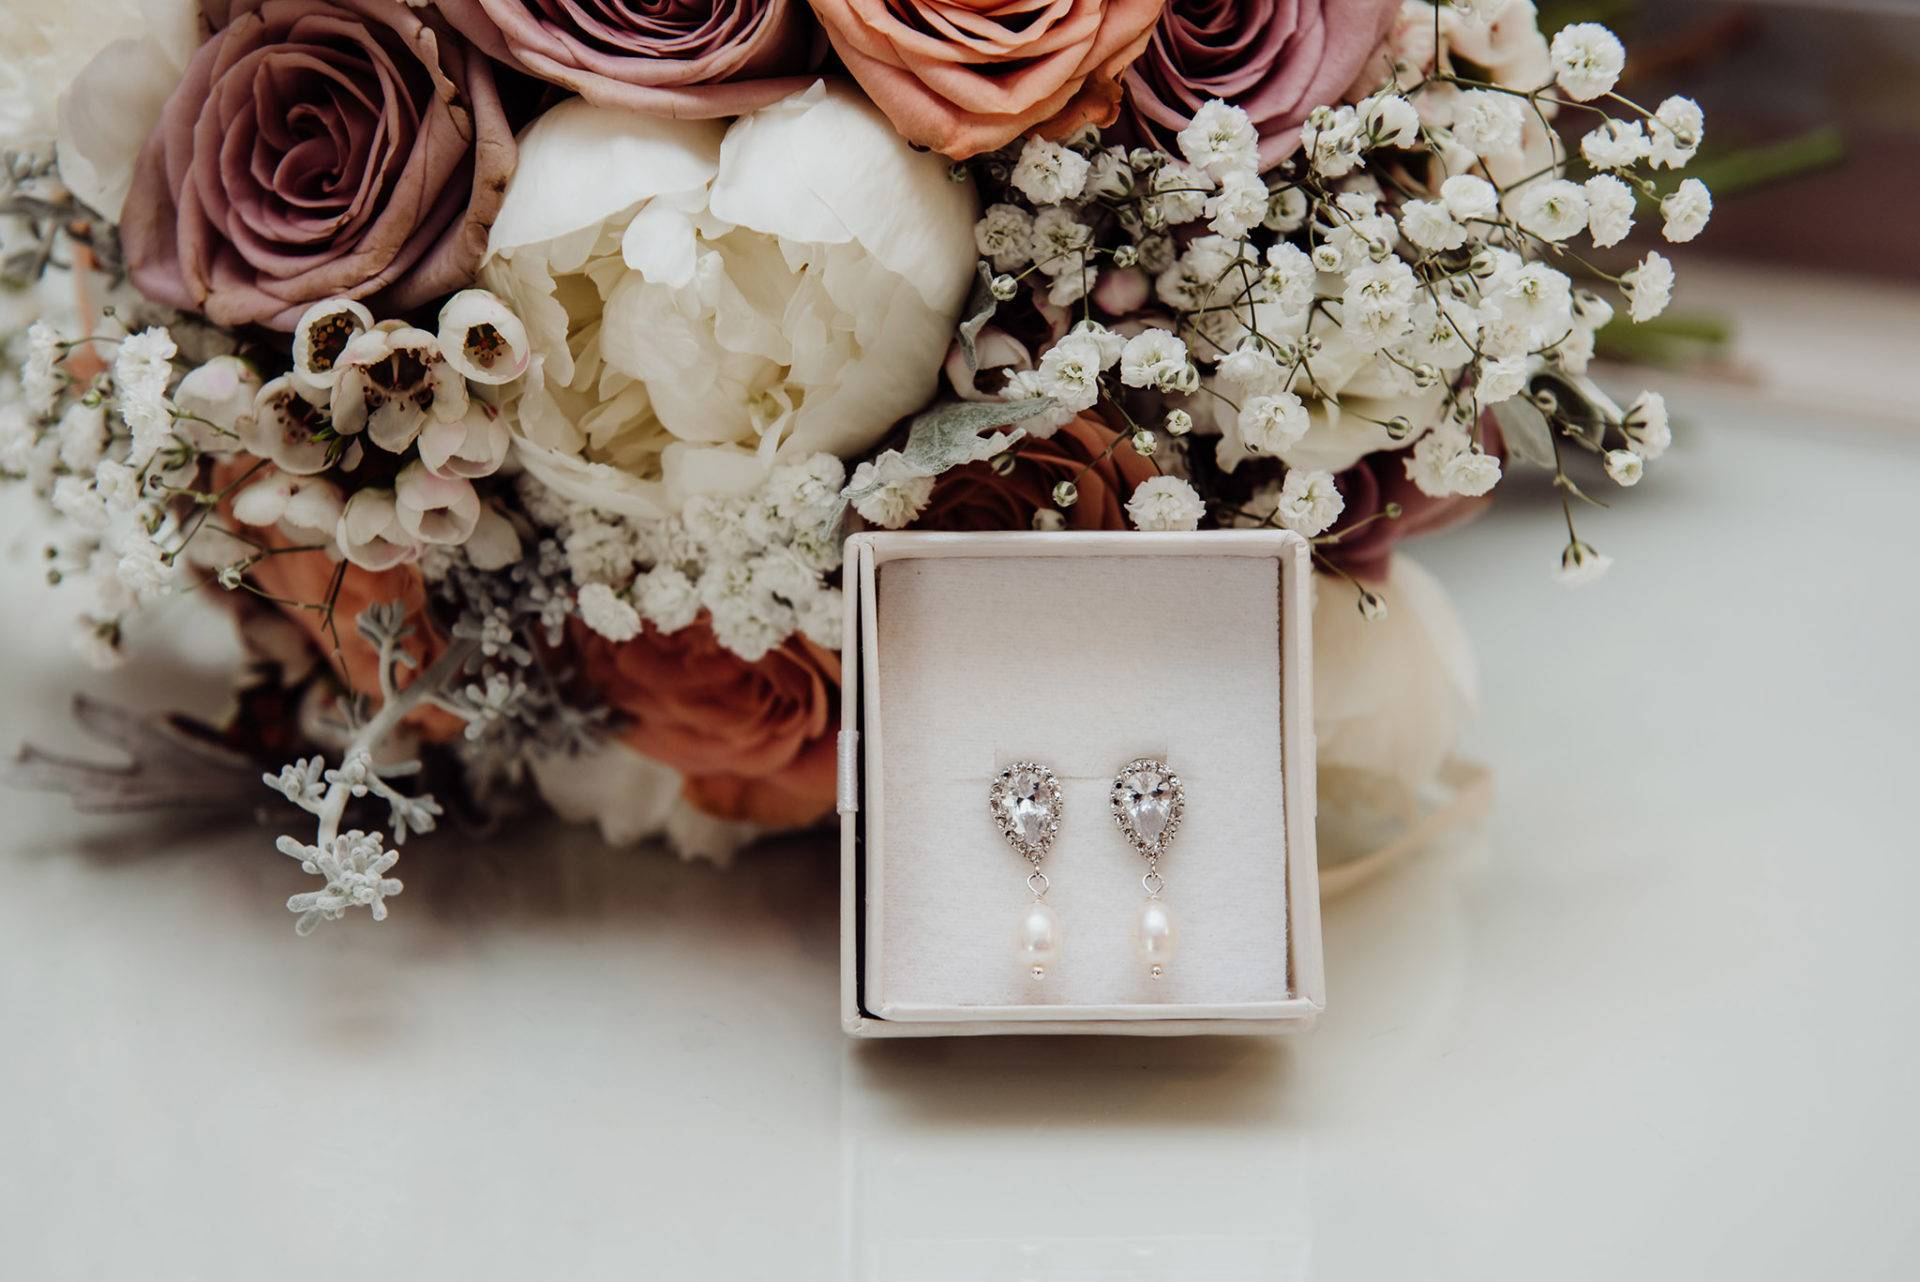 wedding earrings in front of flowers